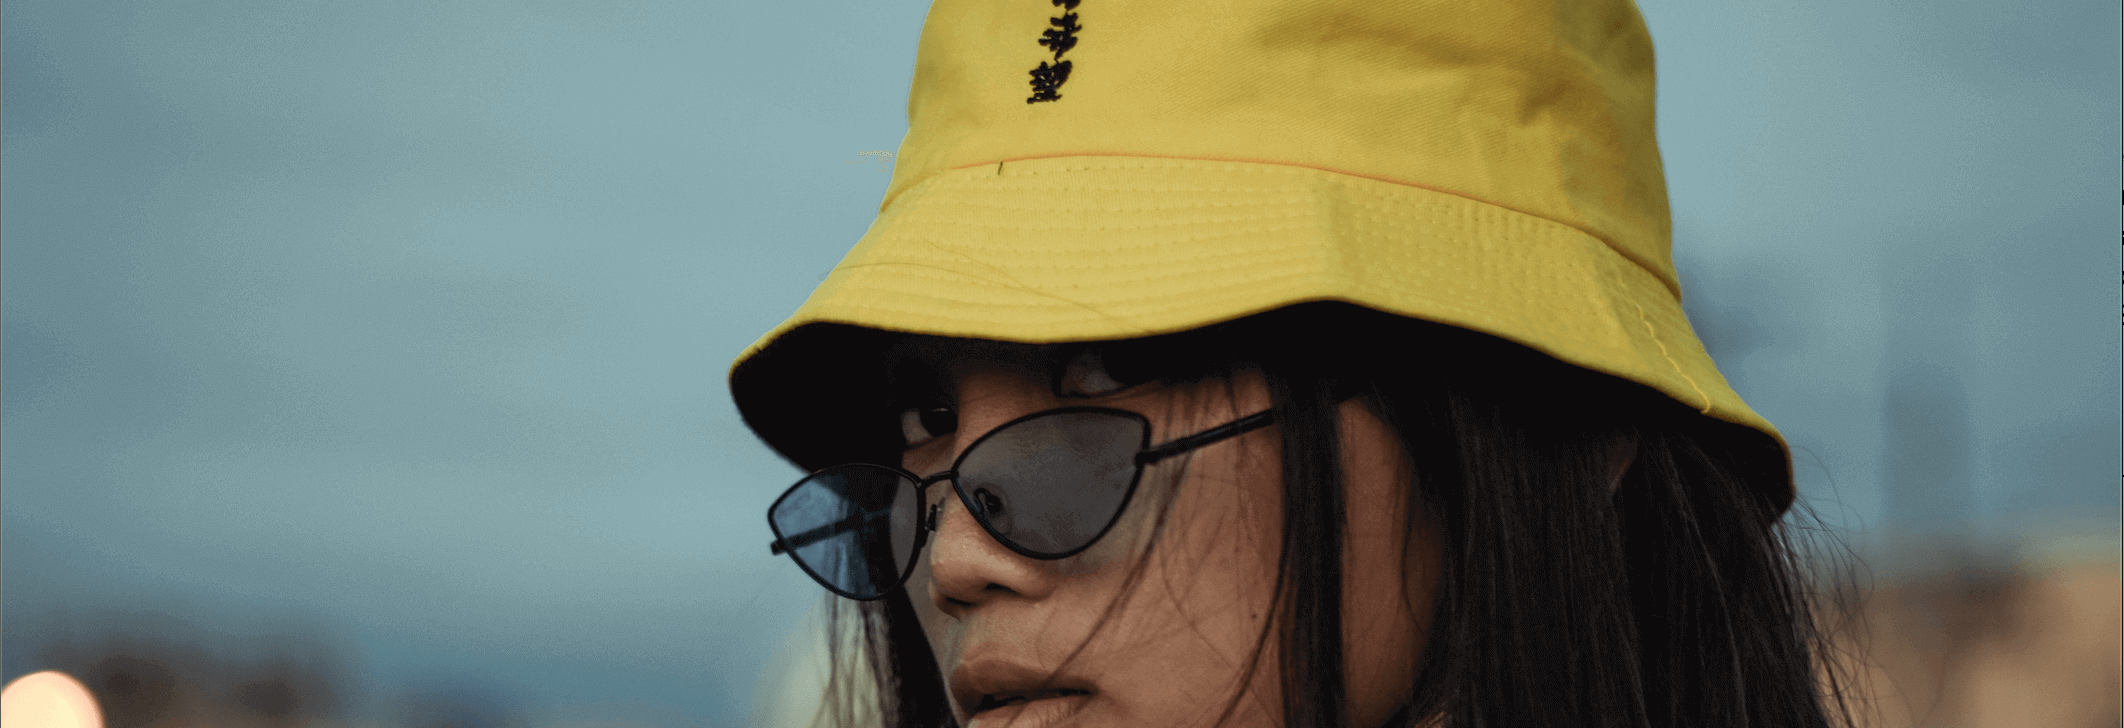 How To Style a Bucket Hat?